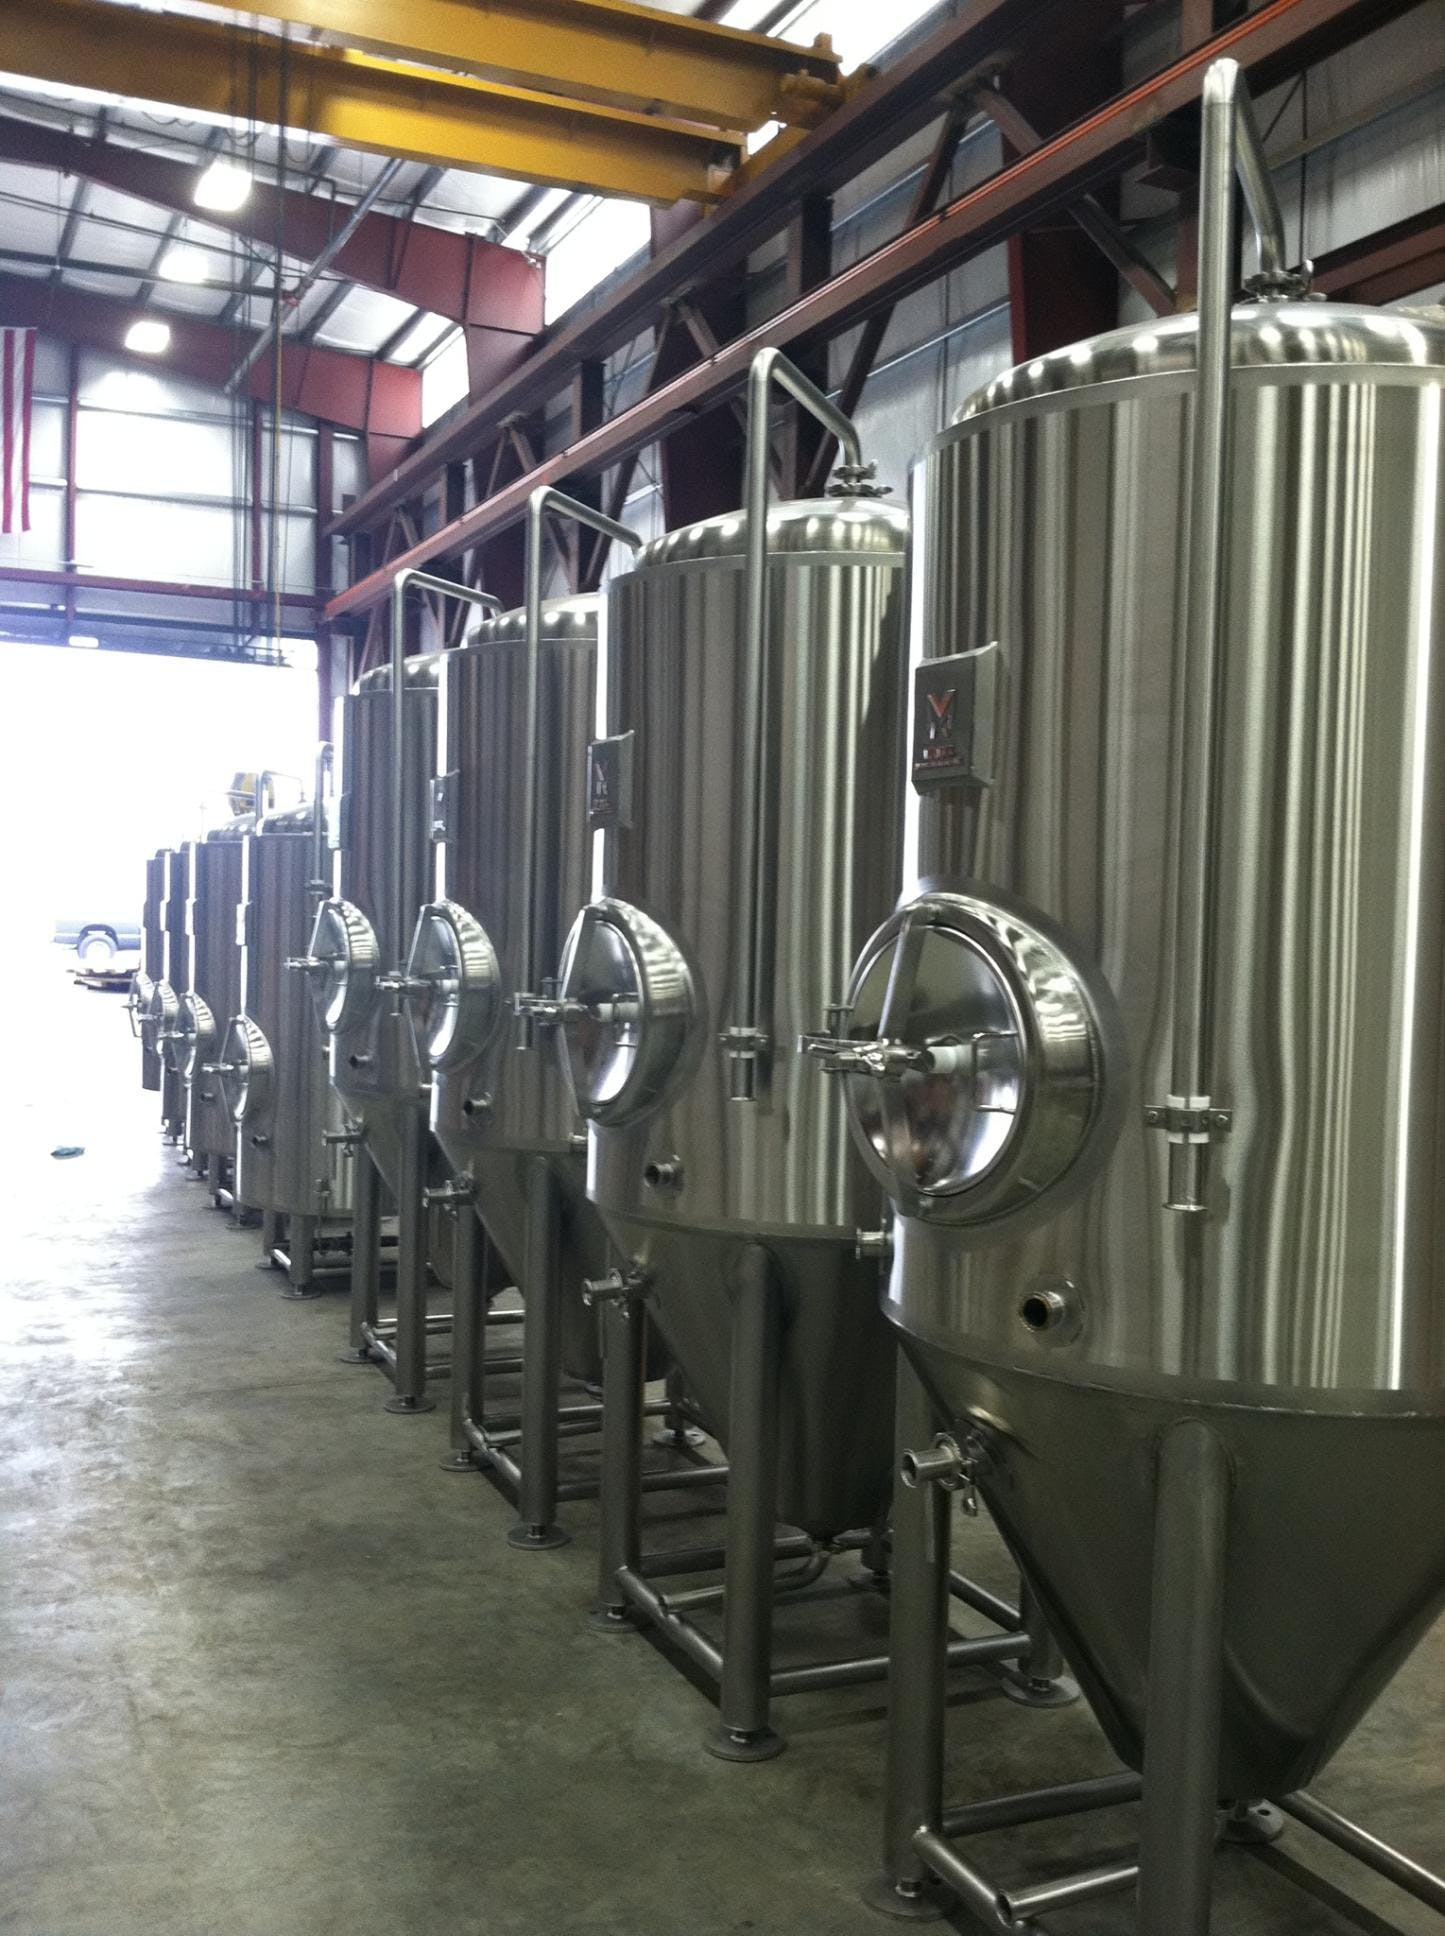 10 BBL Cellar Tanks Brewery tank sold by Marks Design and Metalworks